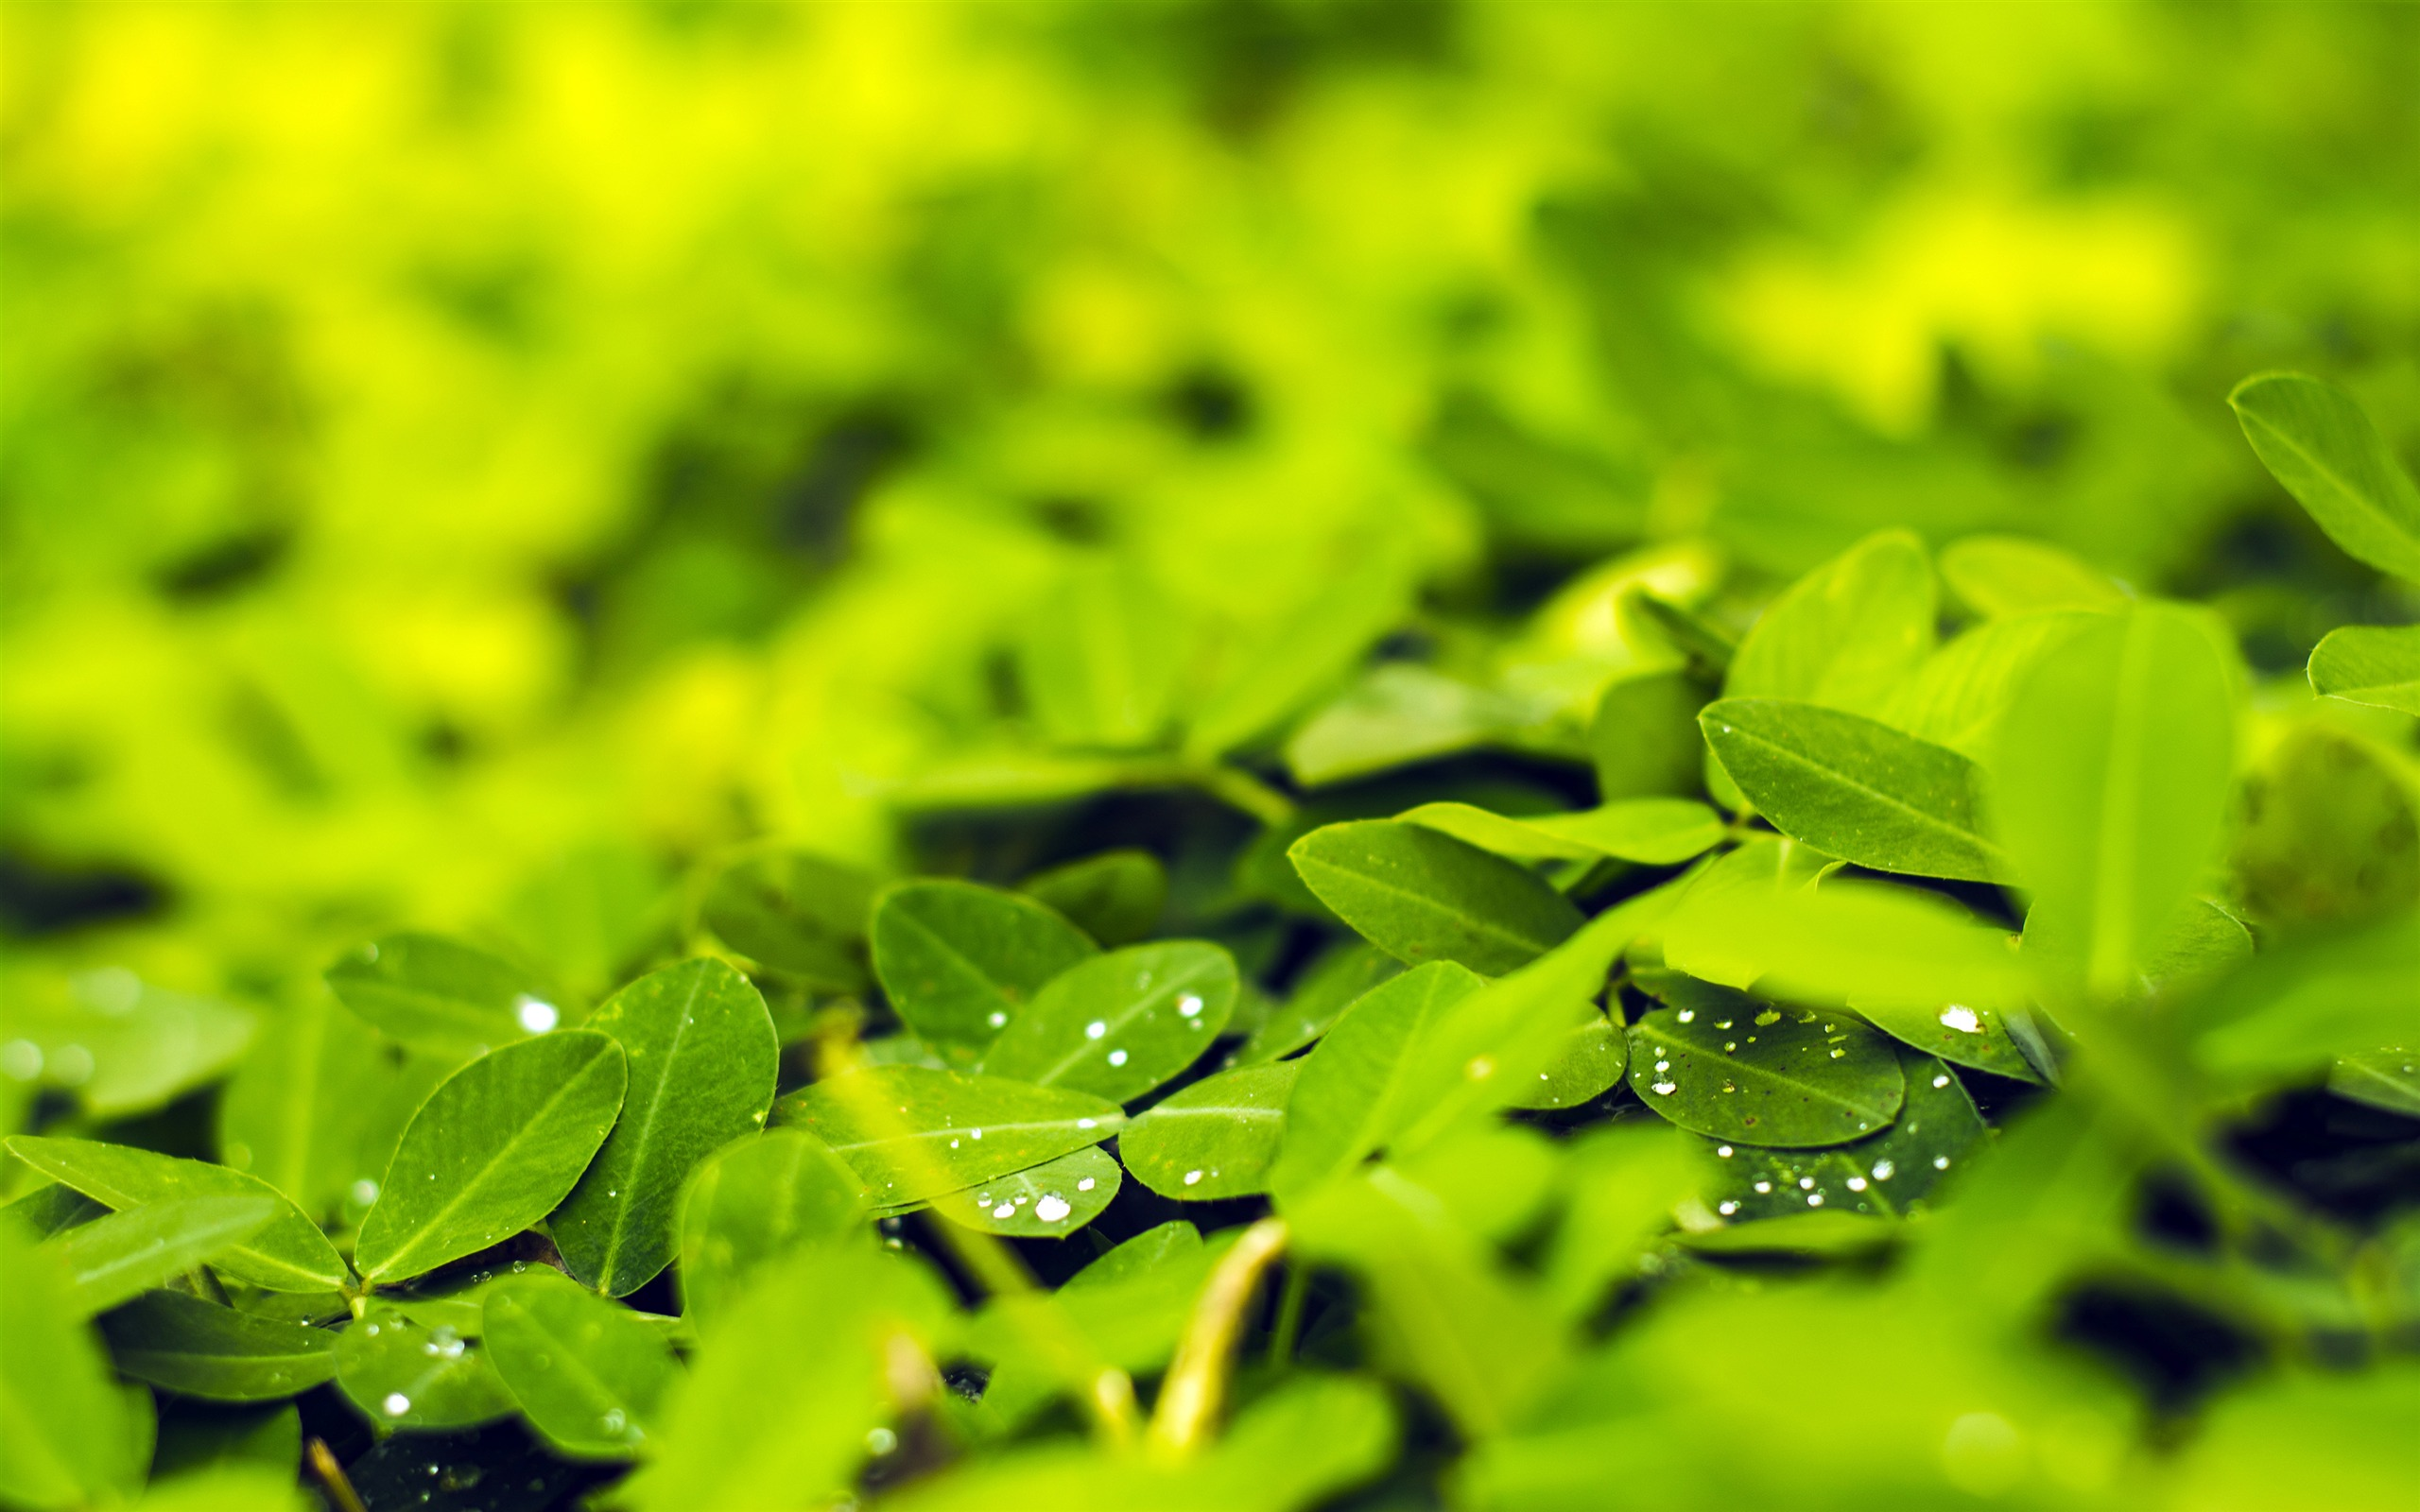 Spring fresh green leaves water droplets - 2560x1600 wallpaper download